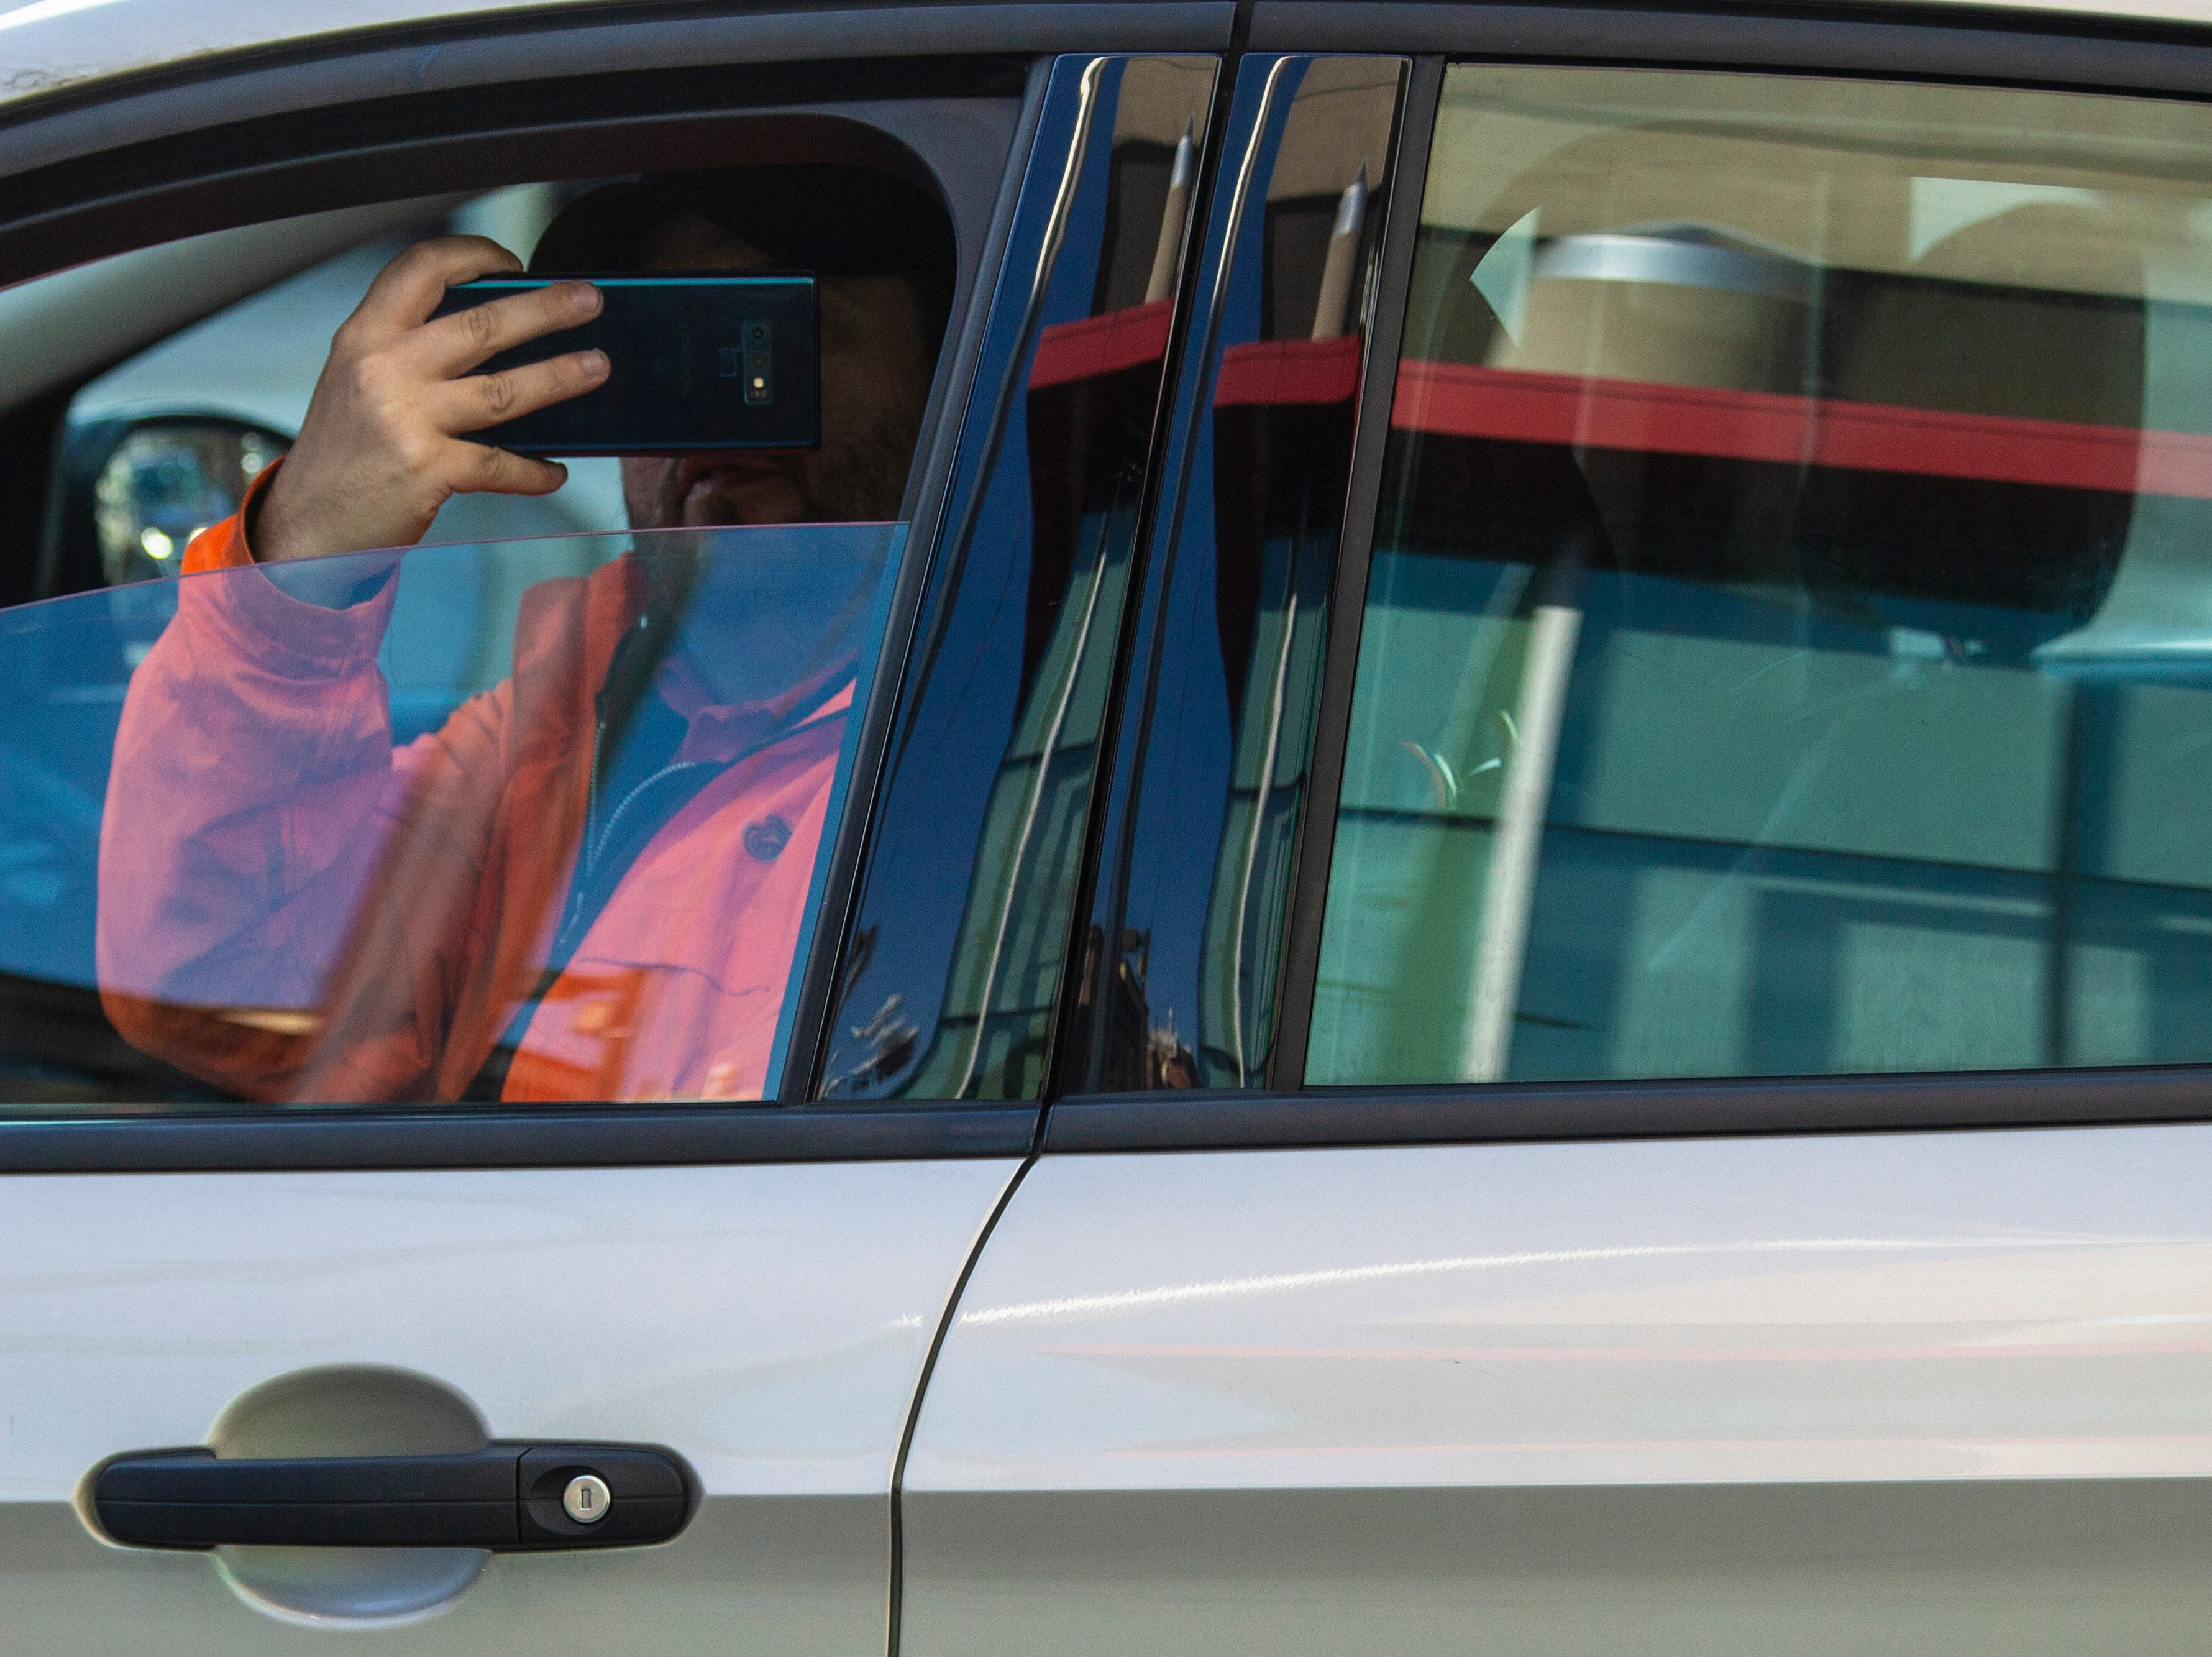 A motorist takes pictures of the Pro Clean International team wearing super hero costumes while cleaning the windows at Norton Children's Hospital on Thursday. Feb. 21, 2019